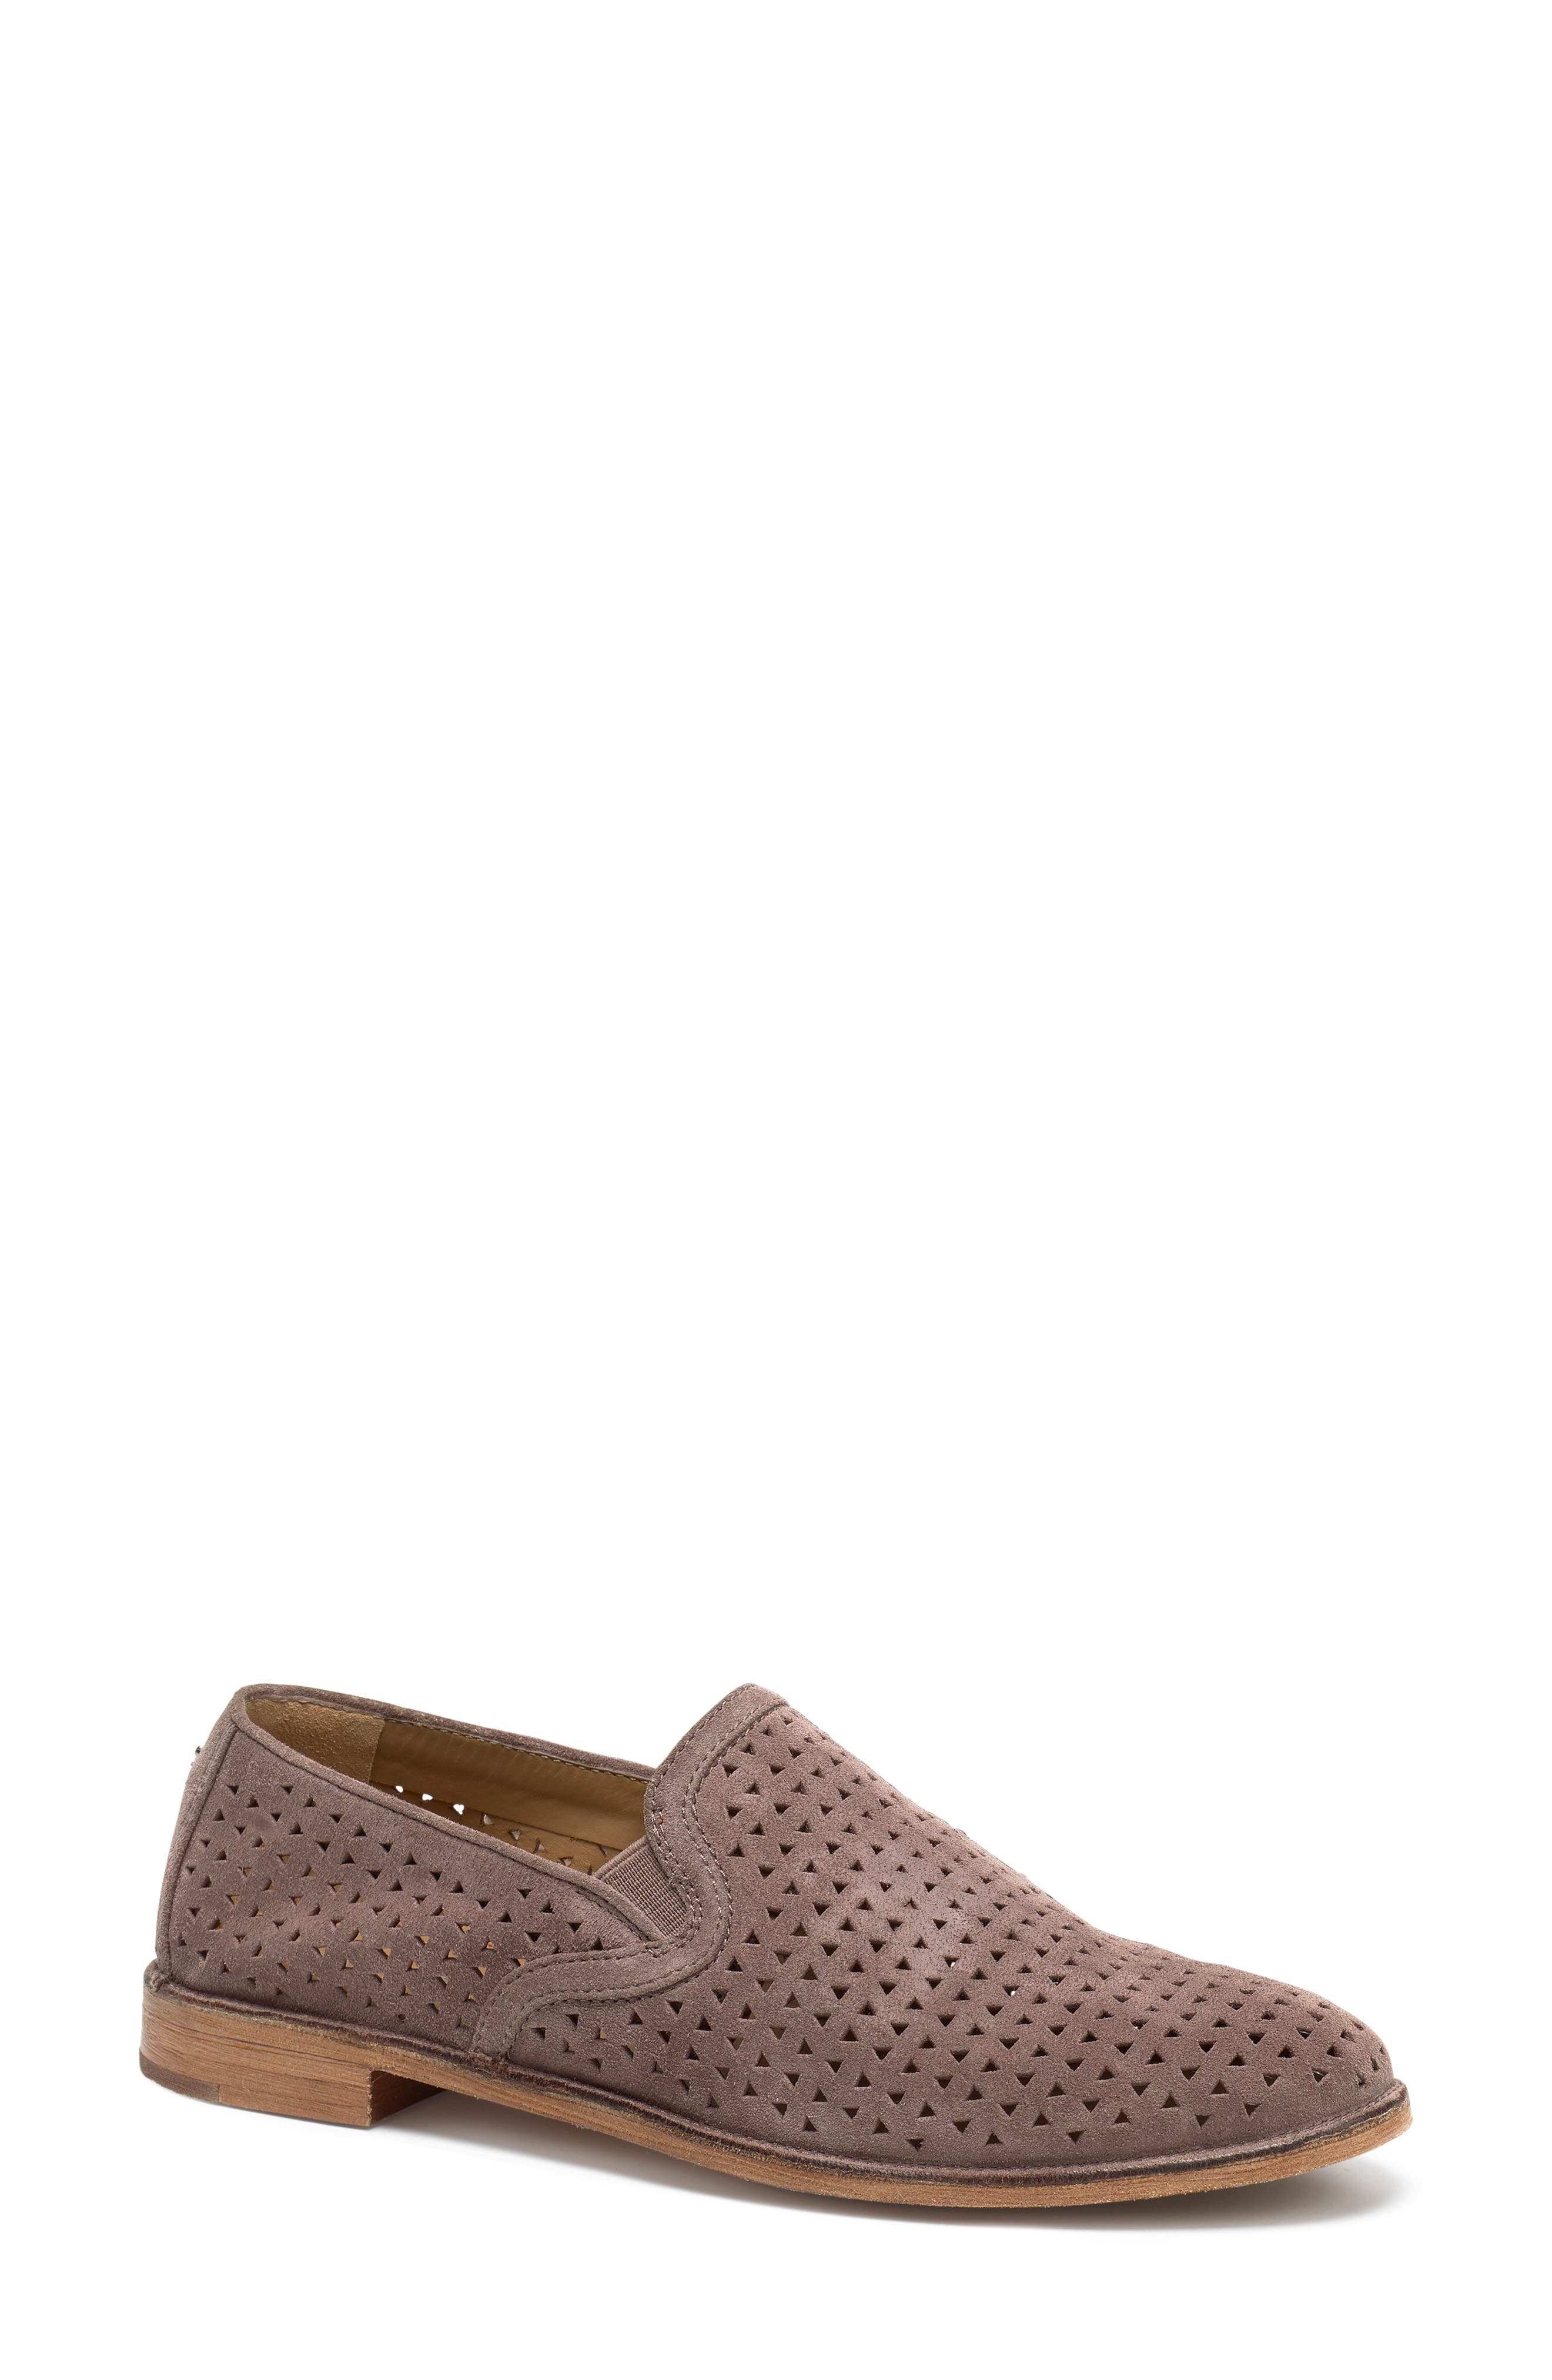 TRASK, Ali Perforated Loafer, Main thumbnail 1, color, BLUSH SUEDE